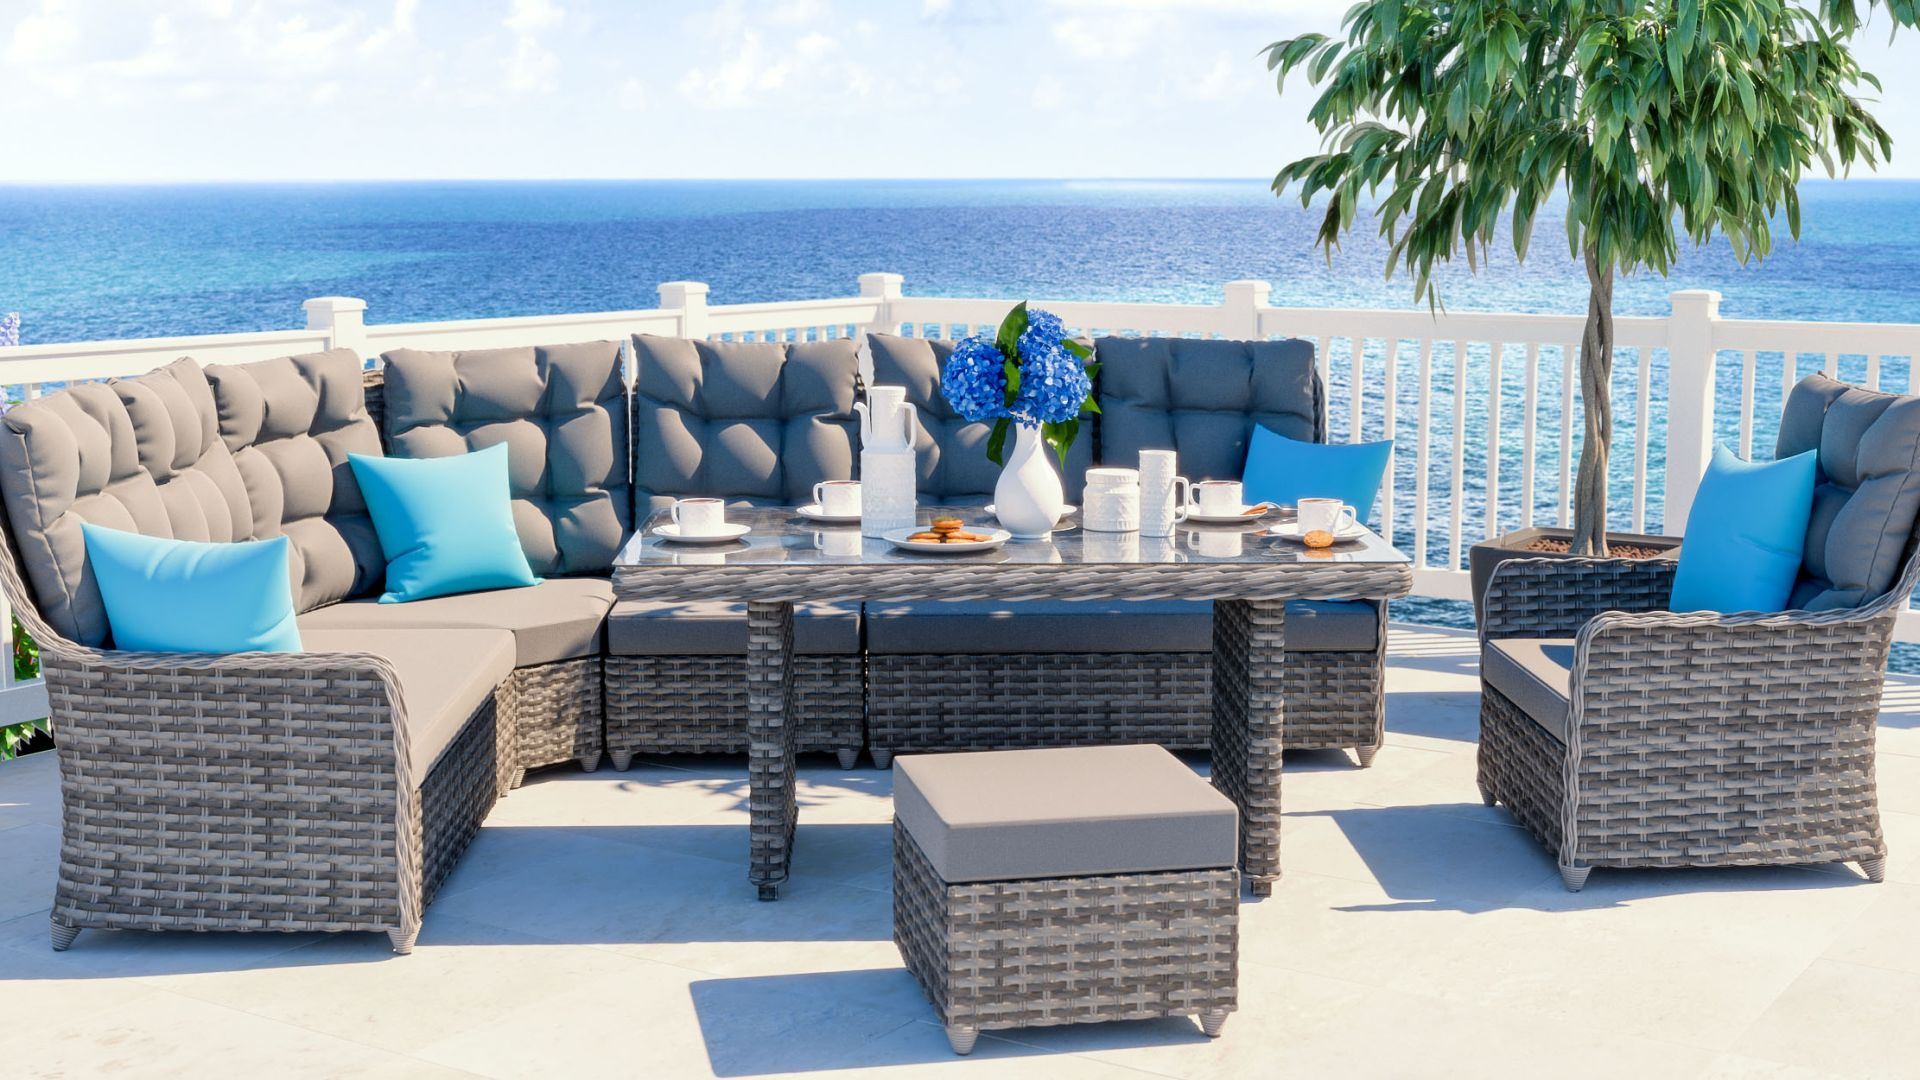 Artelia gartenm bel esstisch set im lounge design for Lounge set rattan gunstig